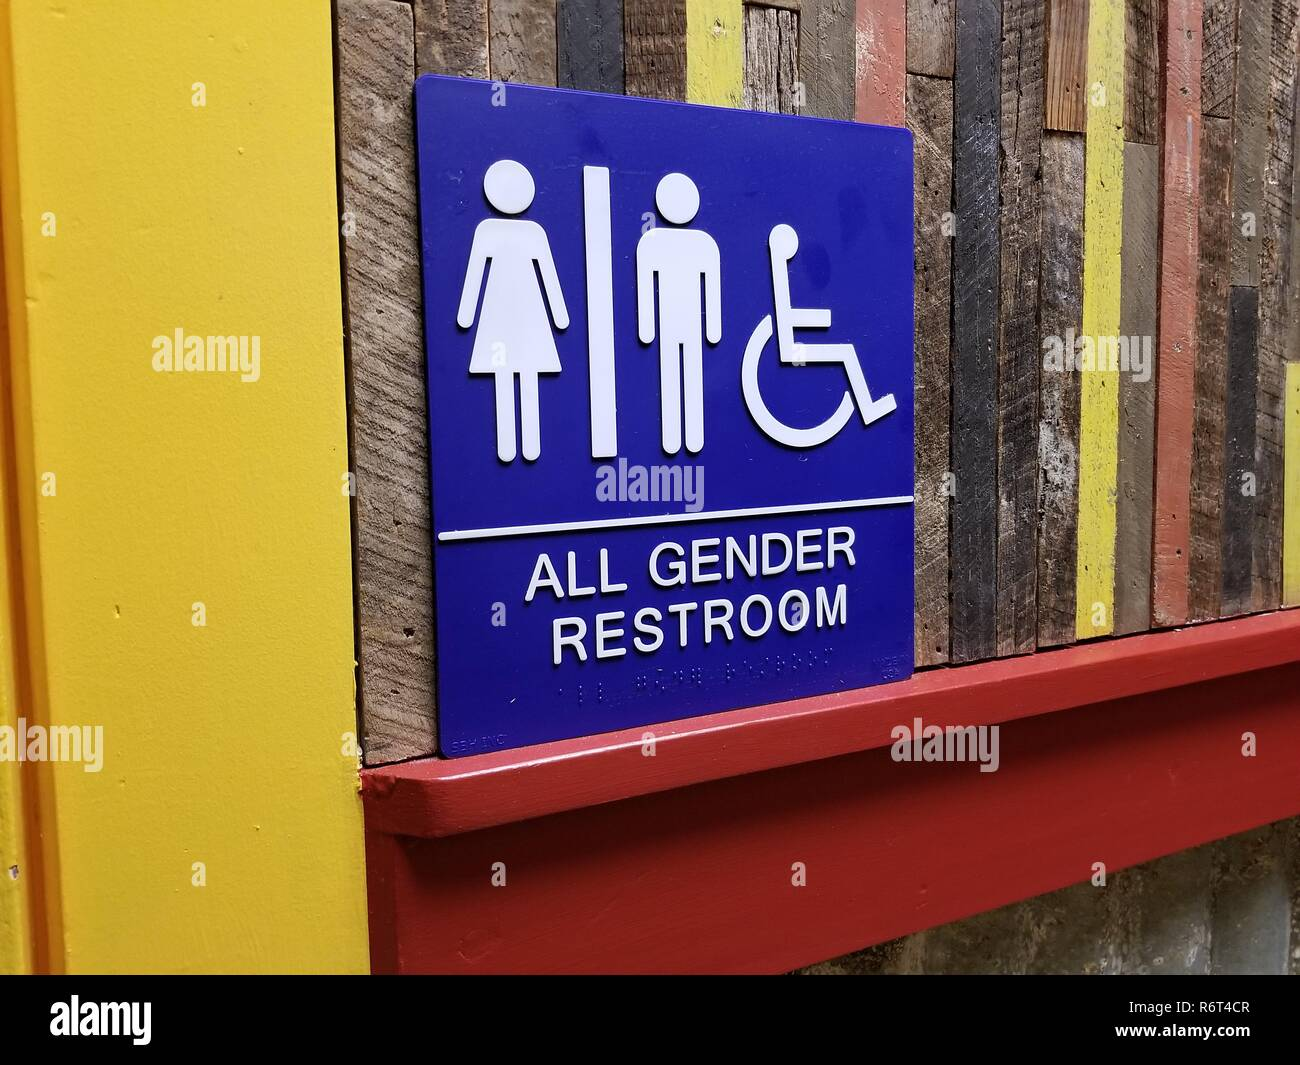 Close-up of sign for an All Gender restroom against a wooden wall with yellow doorframe visible, San Ramon, California, November 28, 2018. () - Stock Image